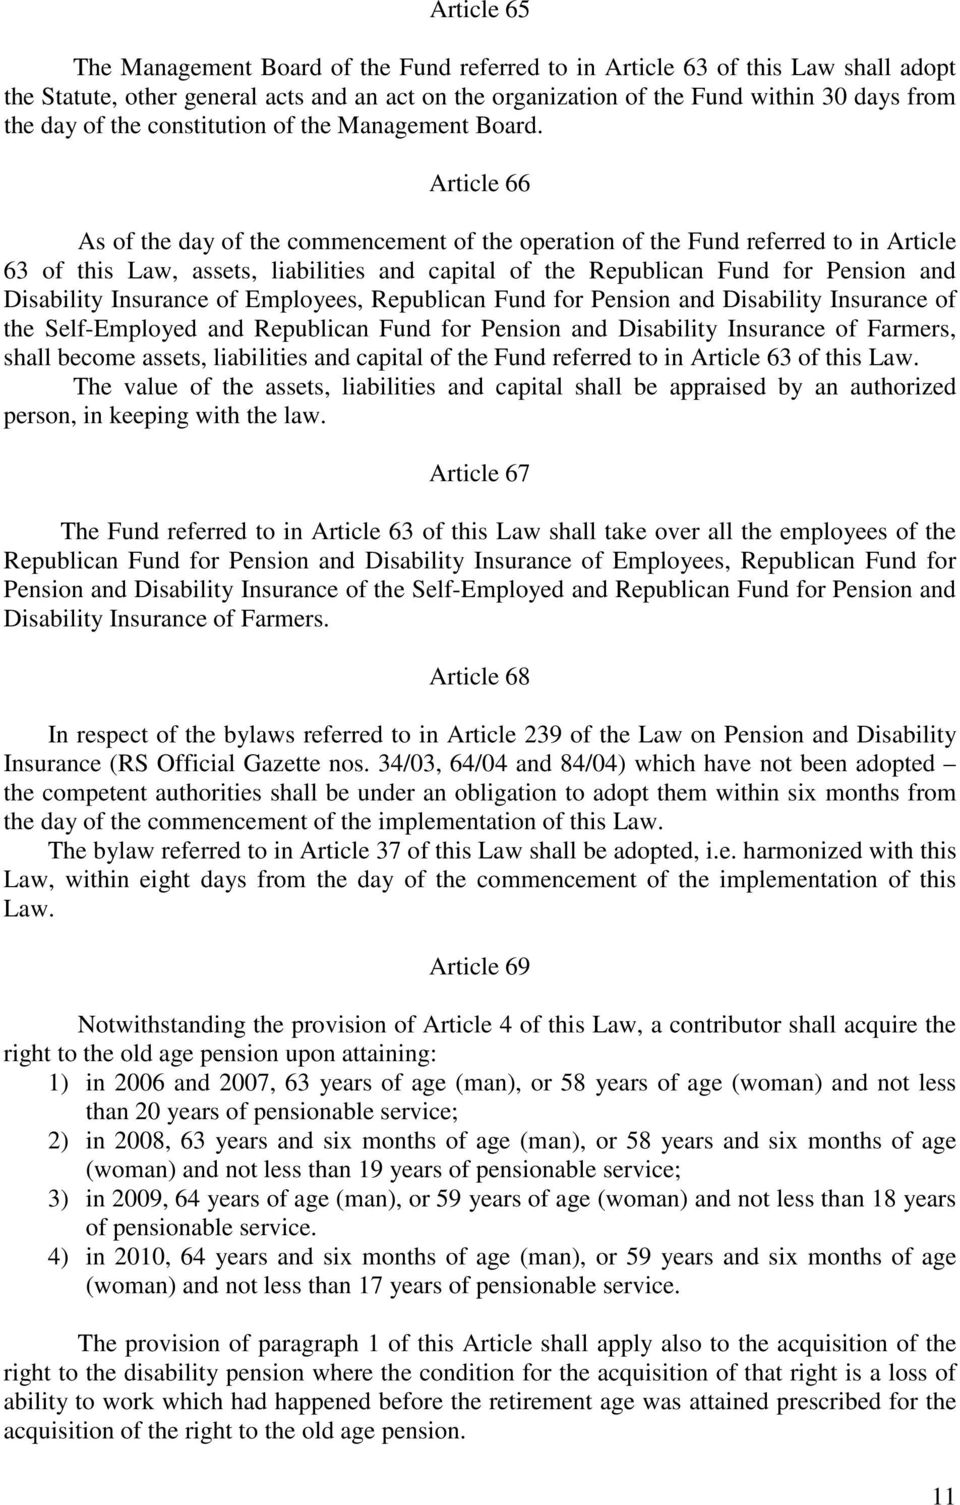 Article 66 As of the day of the commencement of the operation of the Fund referred to in Article 63 of this Law, assets, liabilities and capital of the Republican Fund for Pension and Disability